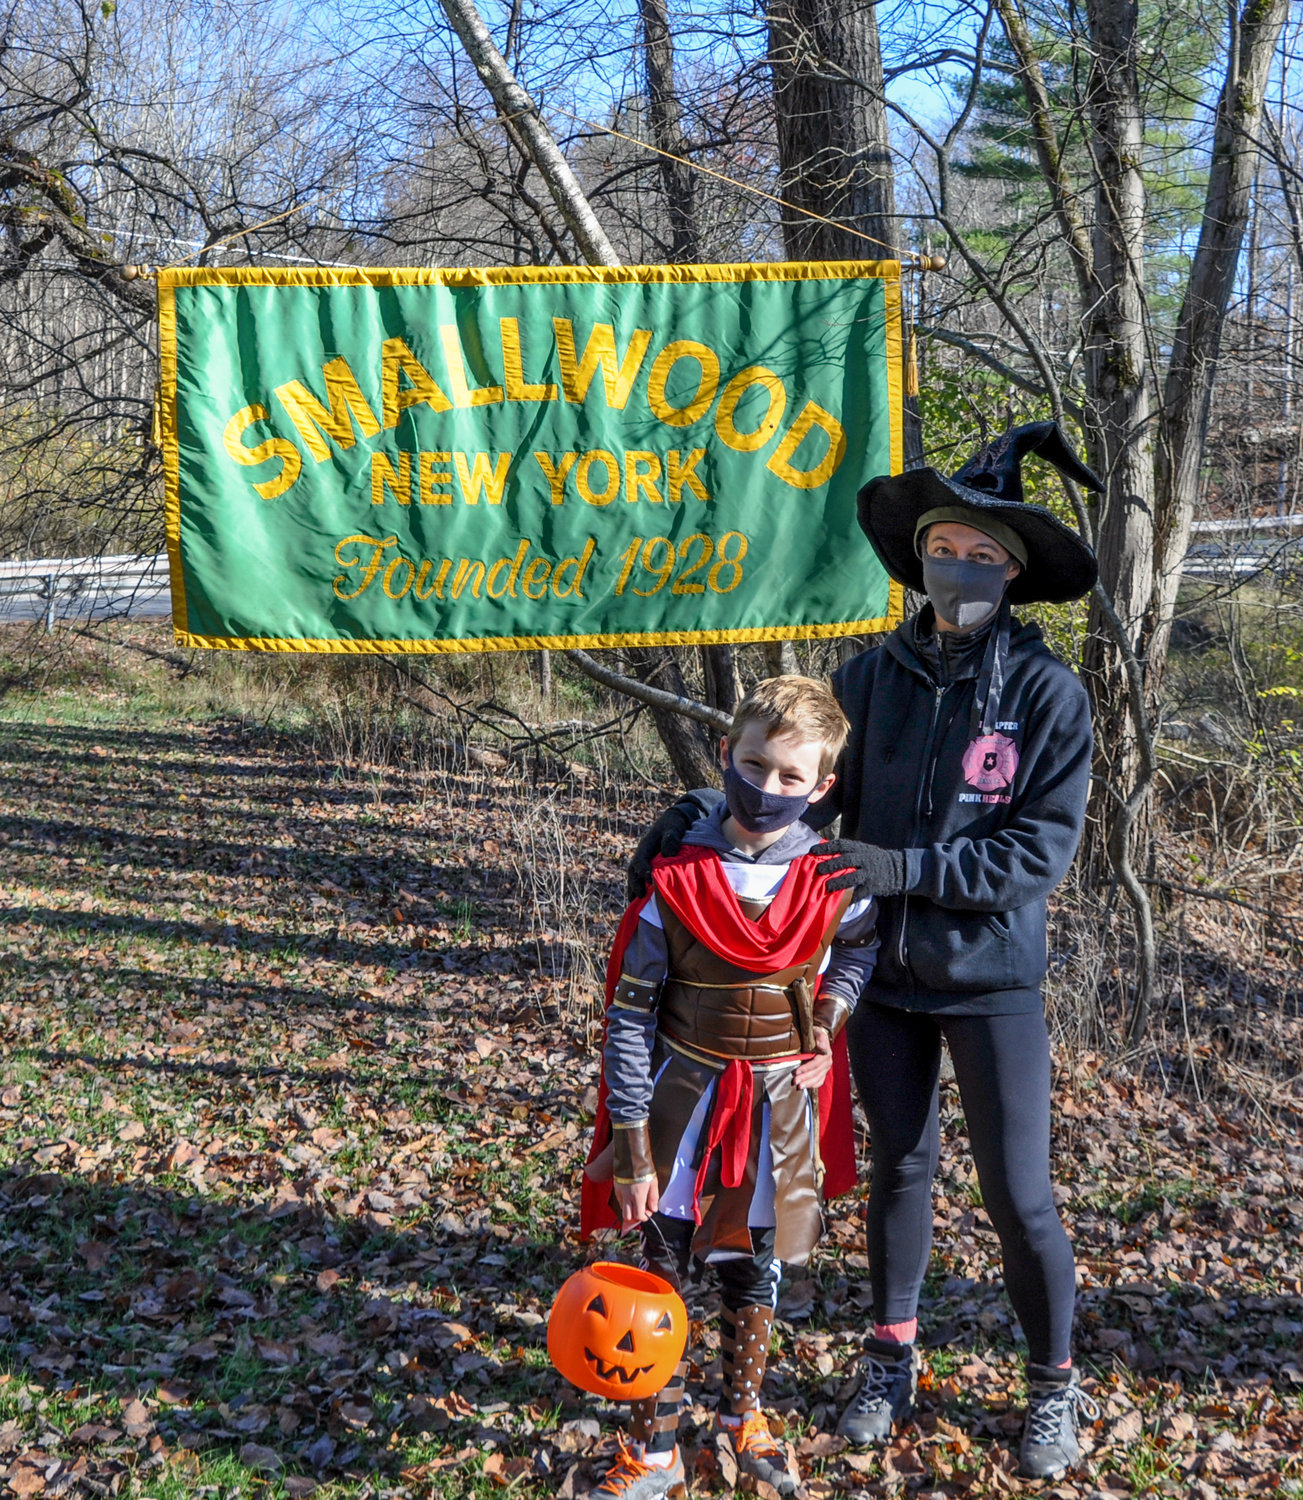 Gladiators, some Spidermen and a few witches were portrayed by kids enjoying the COVID-safe Halloween walk around Smallwood Lake last weekend.